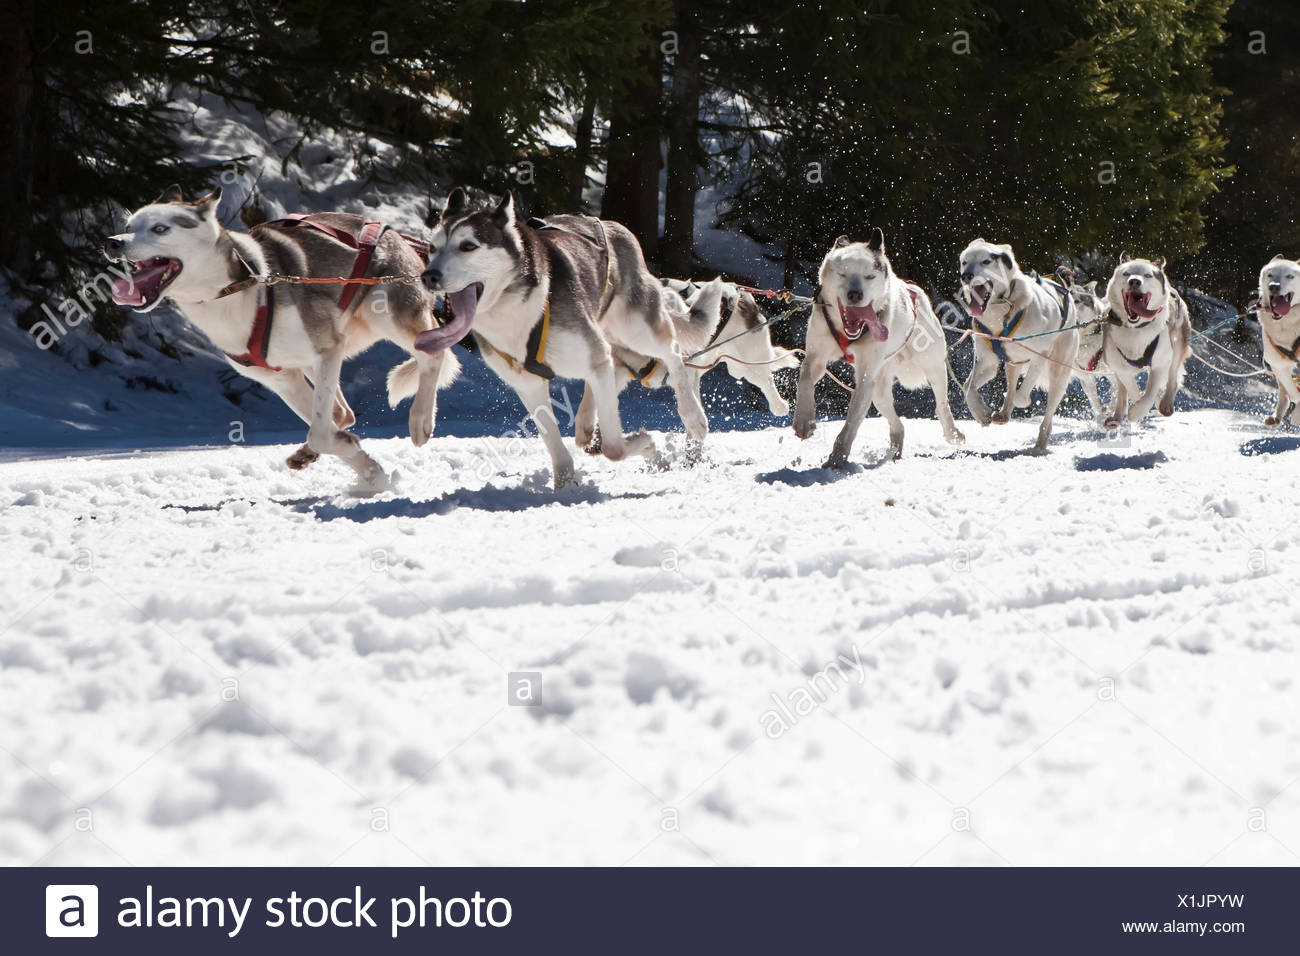 Dog sled or dog sledge, sledge dogs running through a forest, in winter Stock Photo